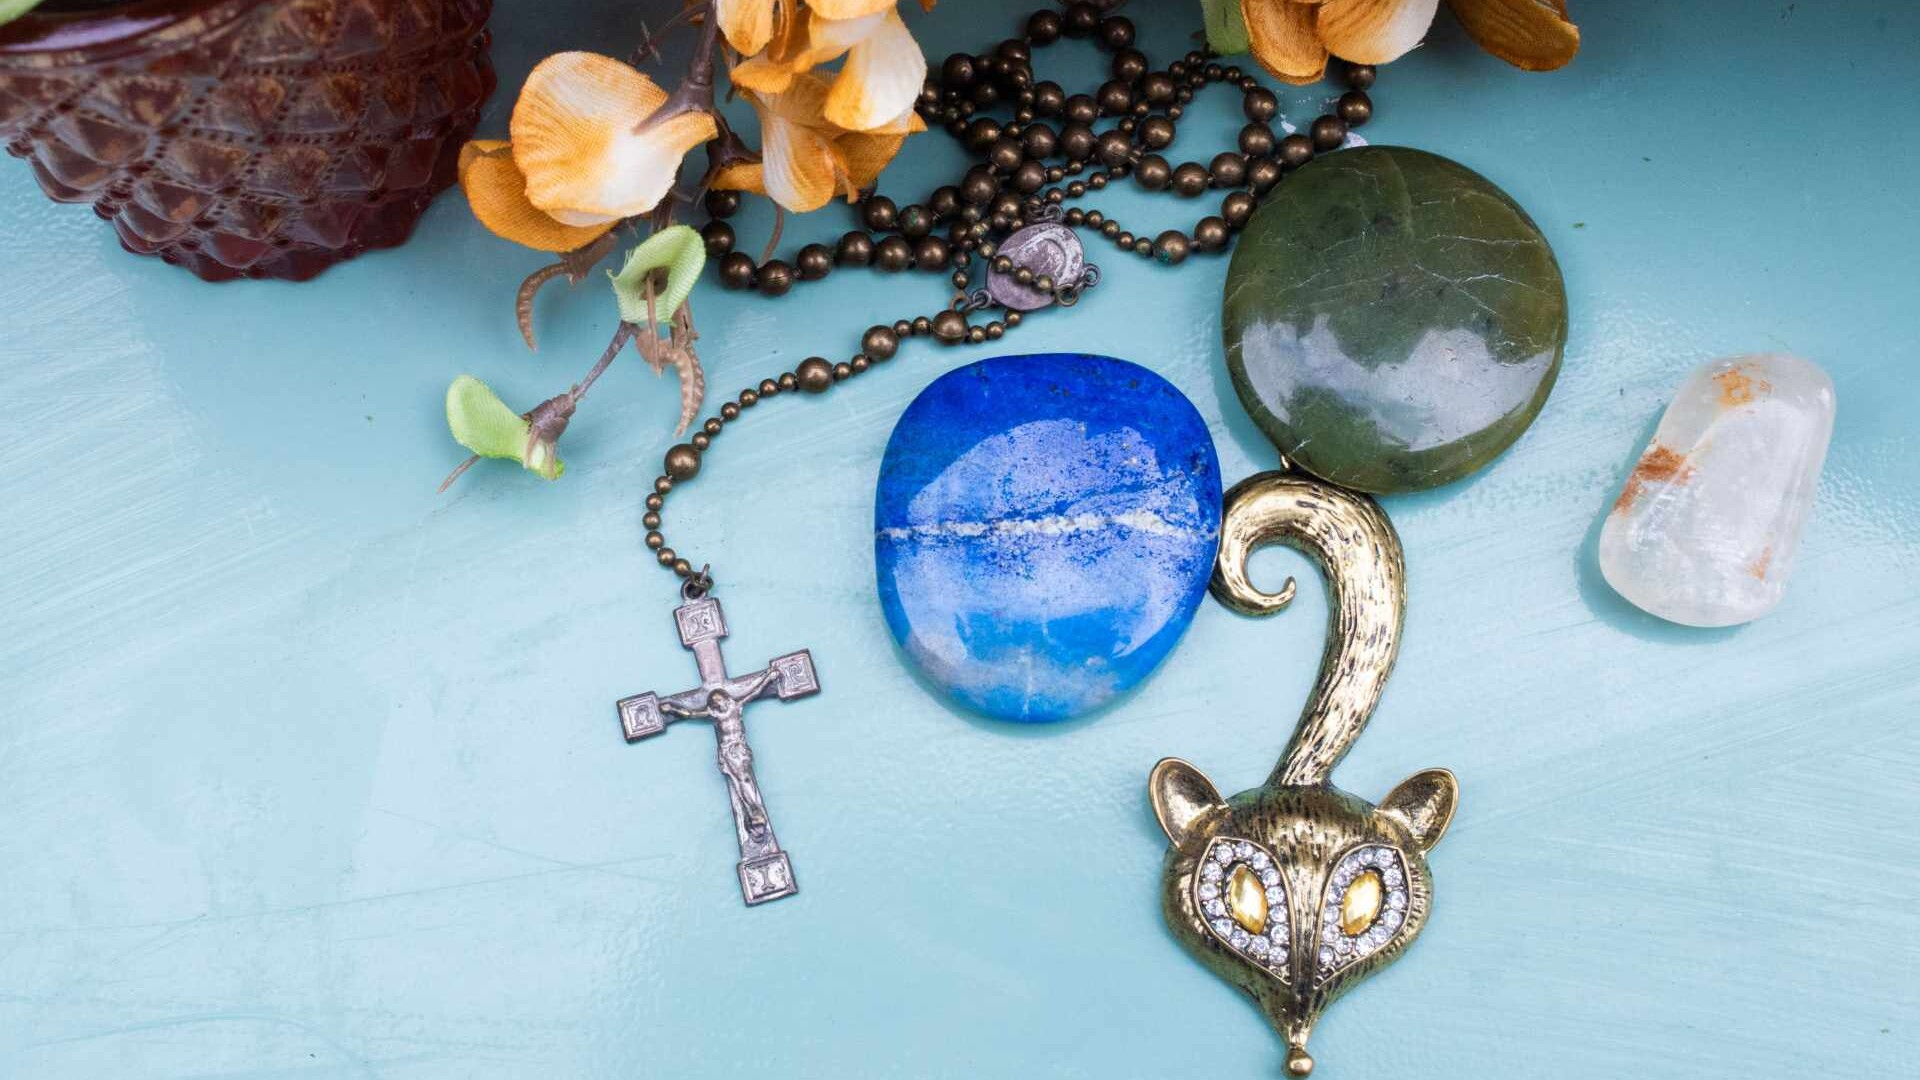 Calling forth magic: a fox talisman, a Christian cross, some orange flowers and a couple of flat, polished crystals rest on a turquoise surface